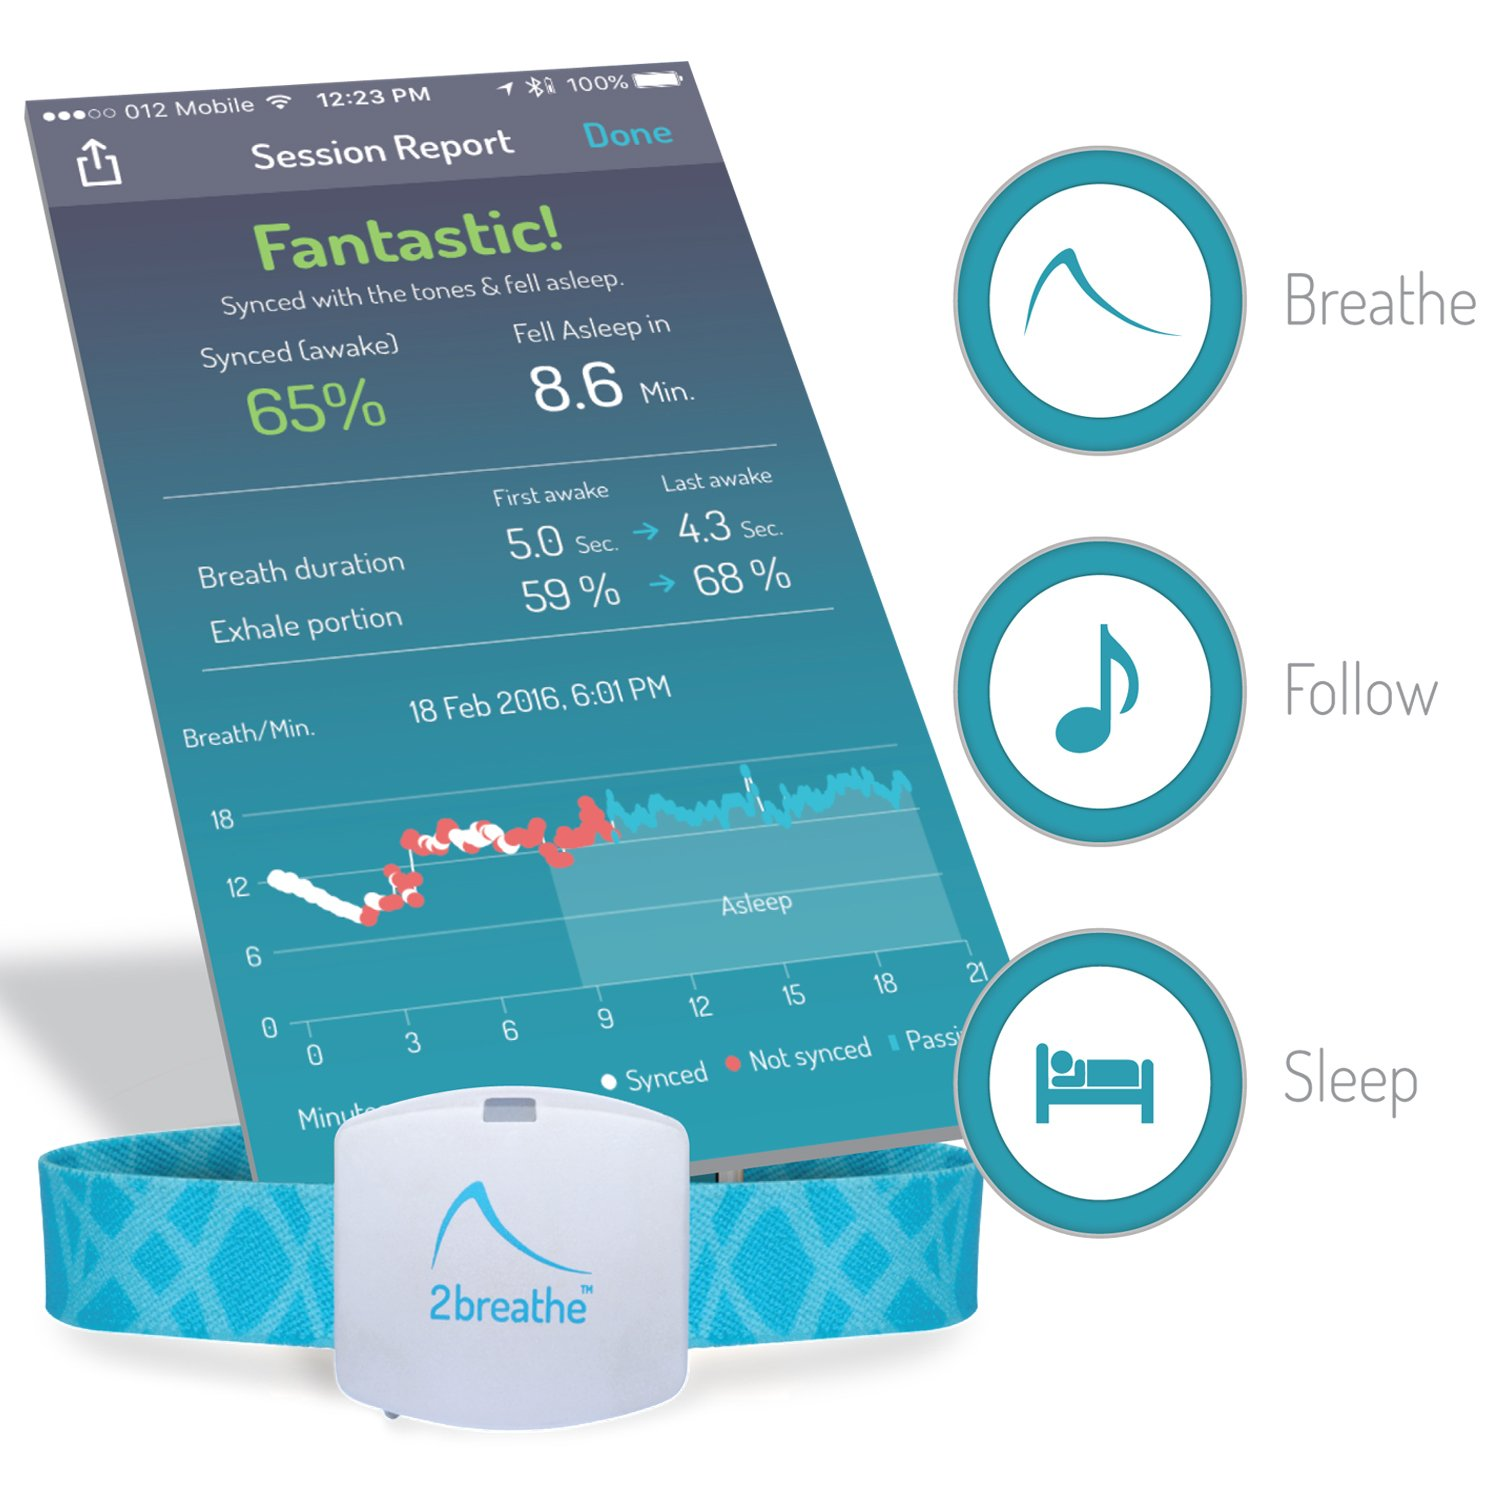 2breathe Sleep Inducer - Sleep Sound System. Smart Device and Mobile App to Induce Sleep. Guides You to Slow Breathing with Prolonged Exhalation using Sounds. Natural Sleep Therapy Machine by RESPeRATE (Image #6)